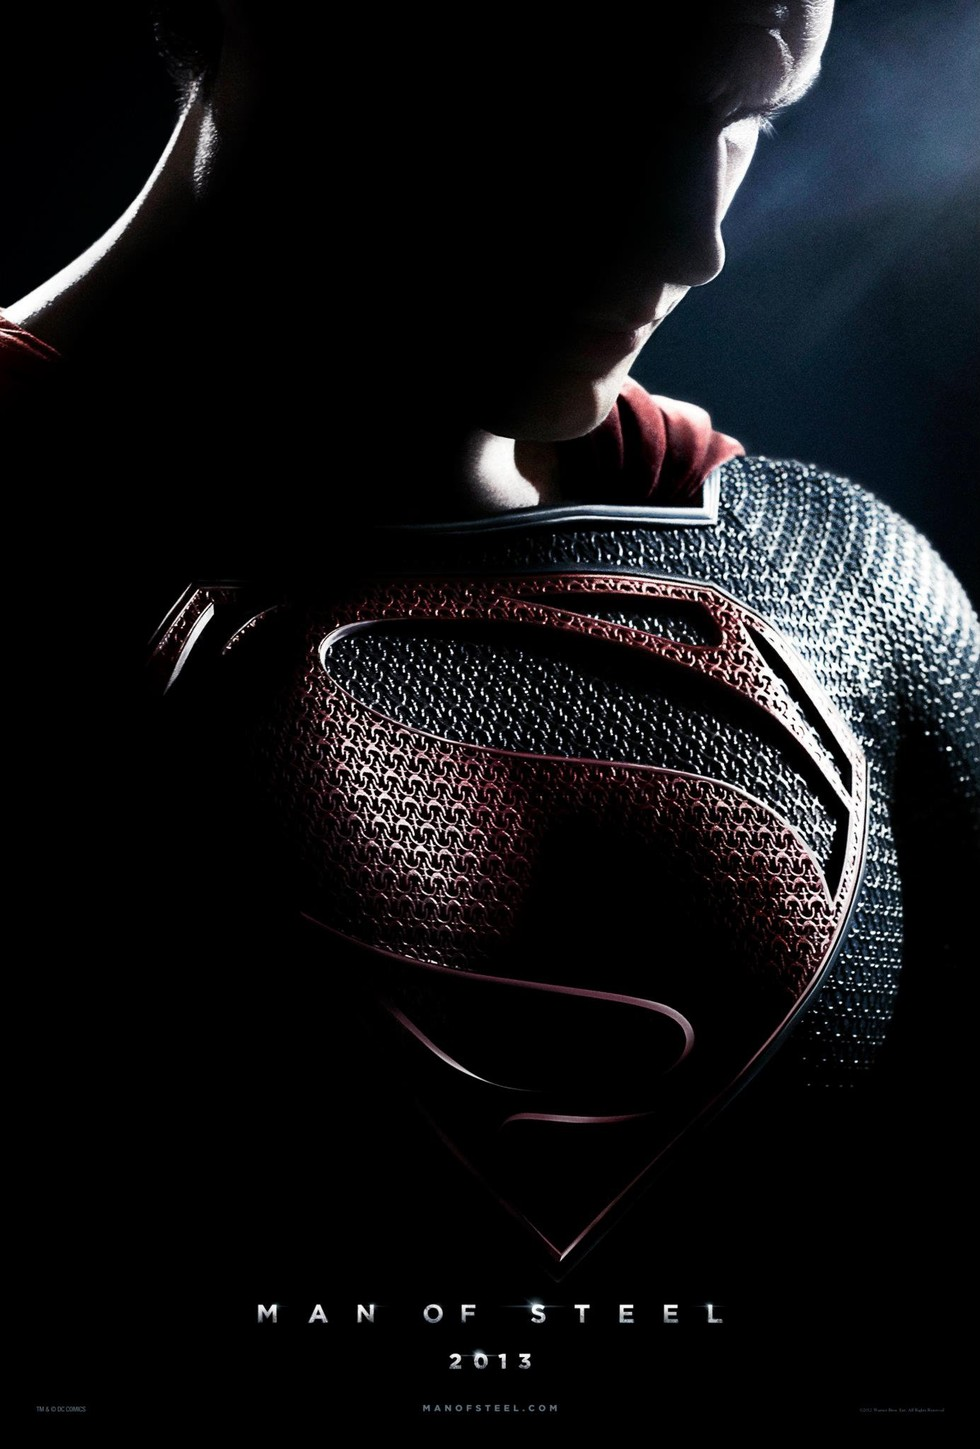 Man of Steel - Movie Poster #2 (Large)